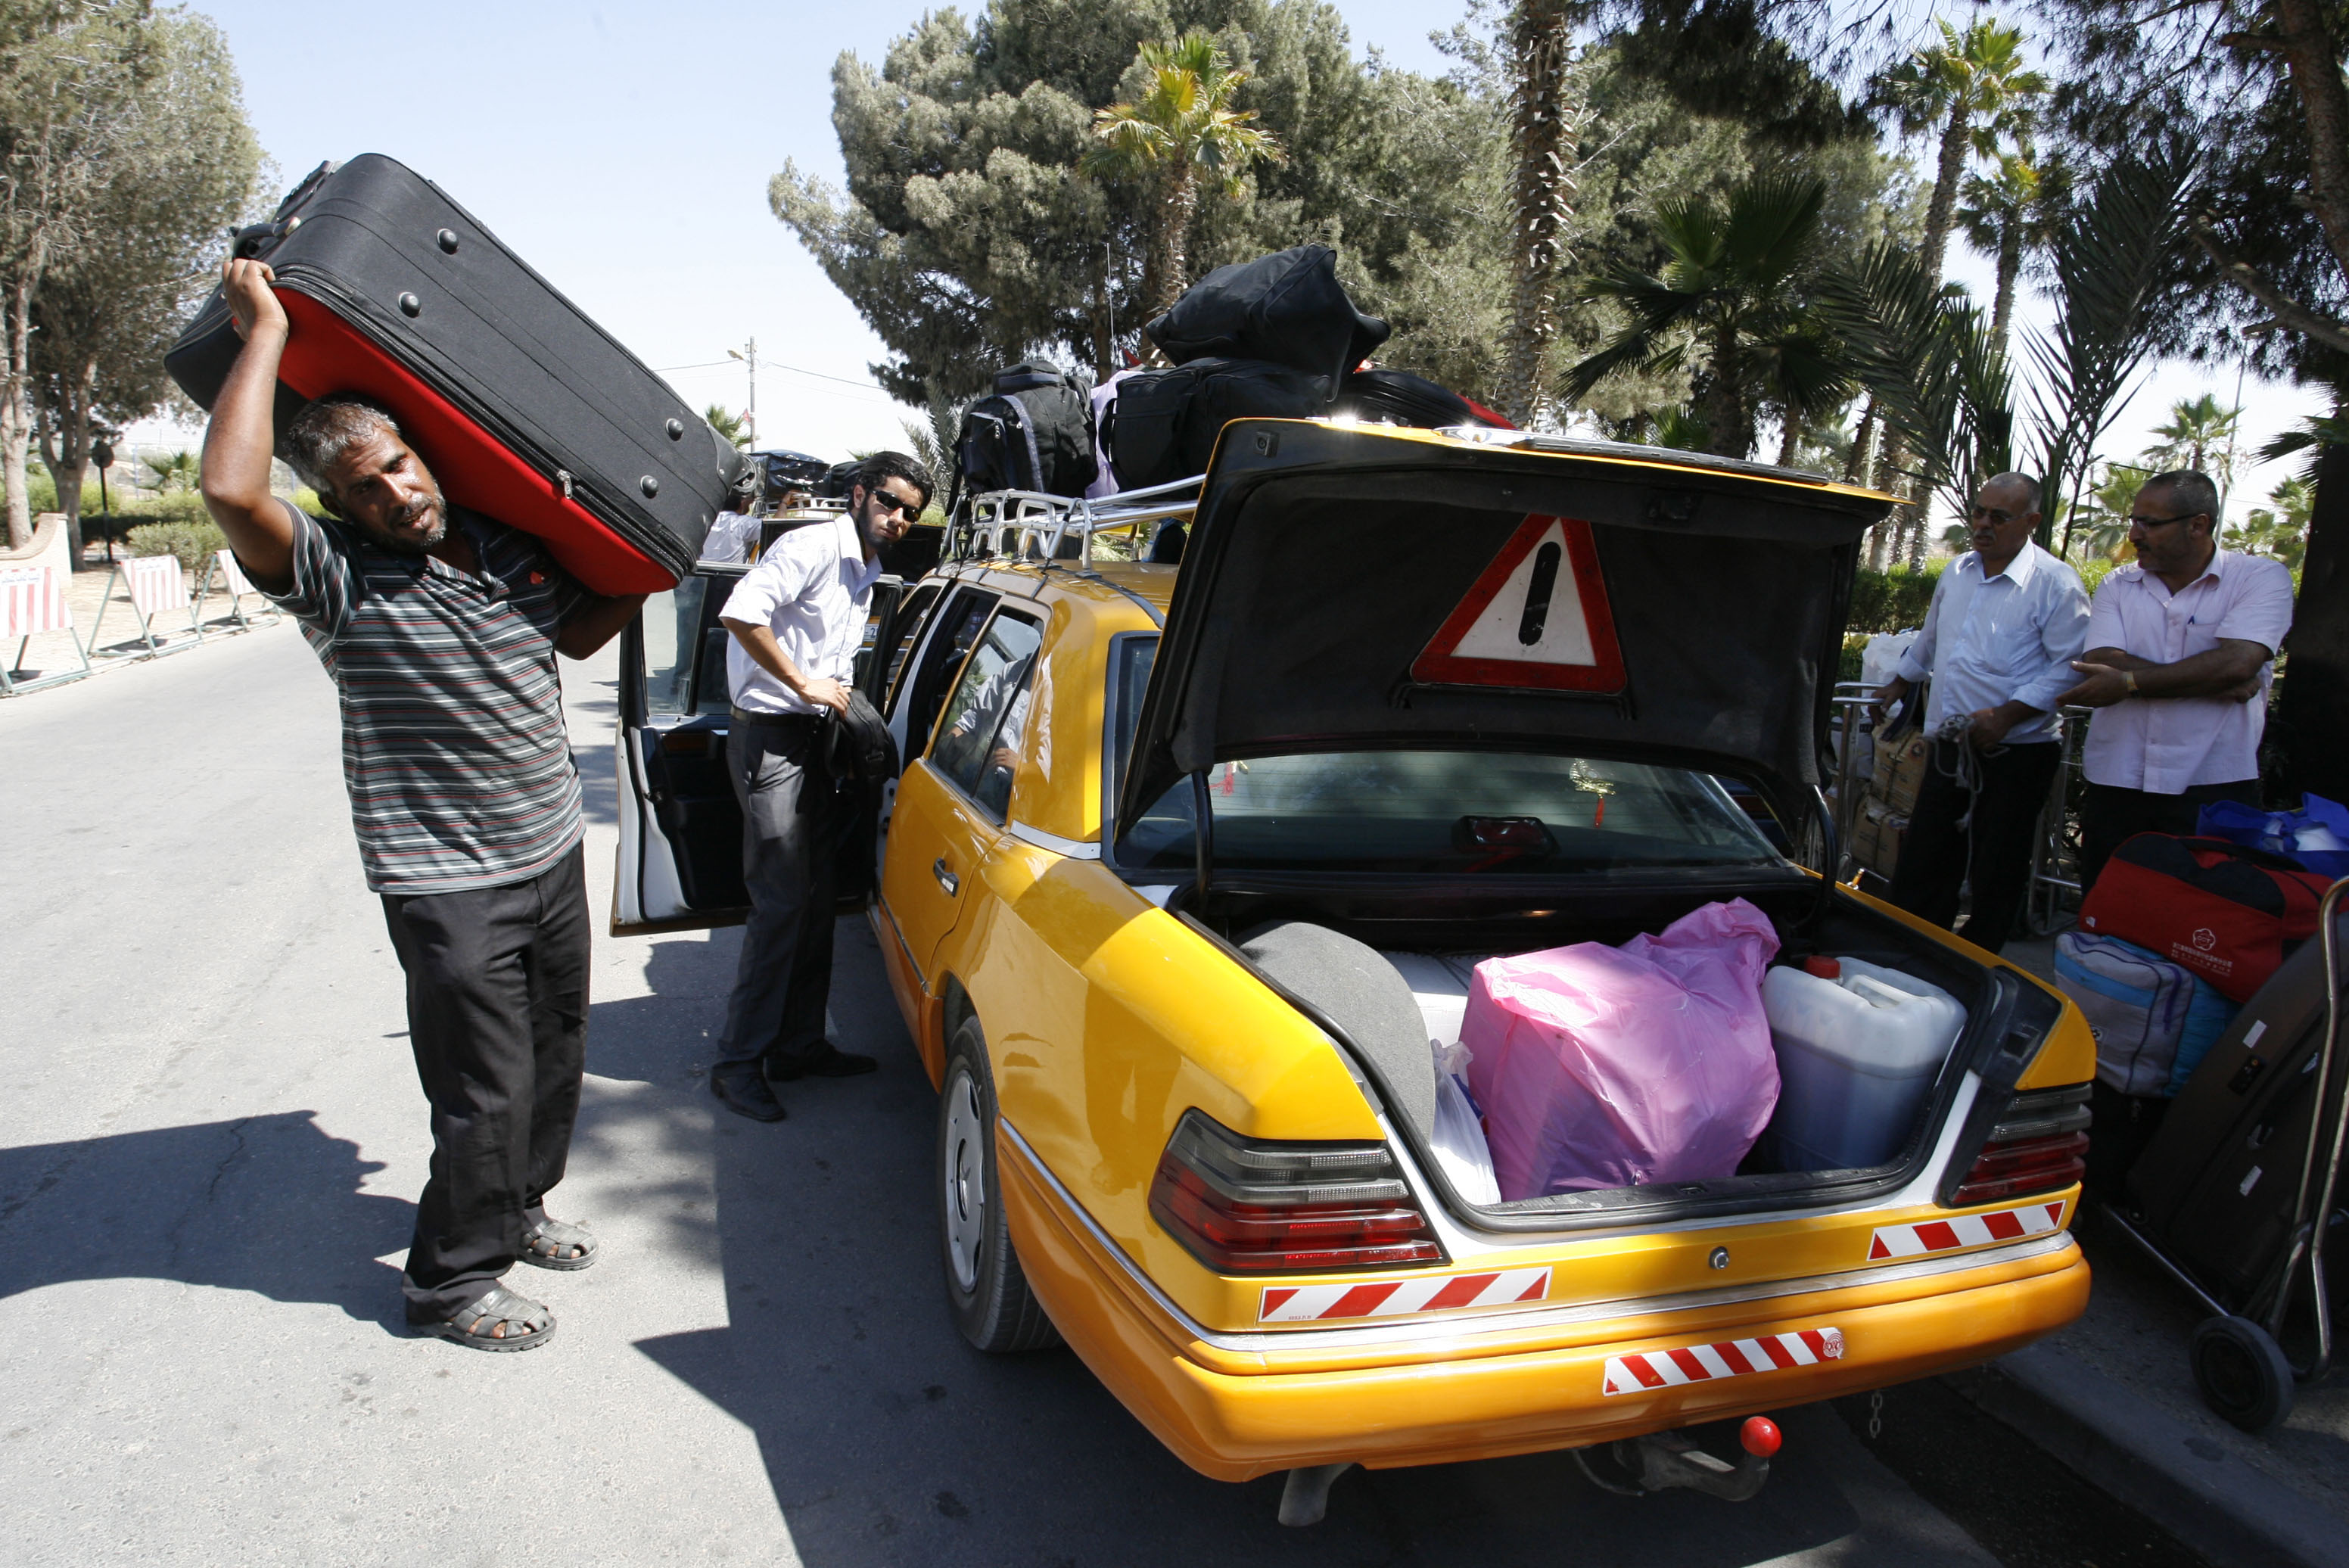 Palestinians unload their belongings from a taxi as the ready to cross to Egypt through the Rafah border crossing between the southern Gaza Strip and Egypt (photo: AFP / Said Khatib)